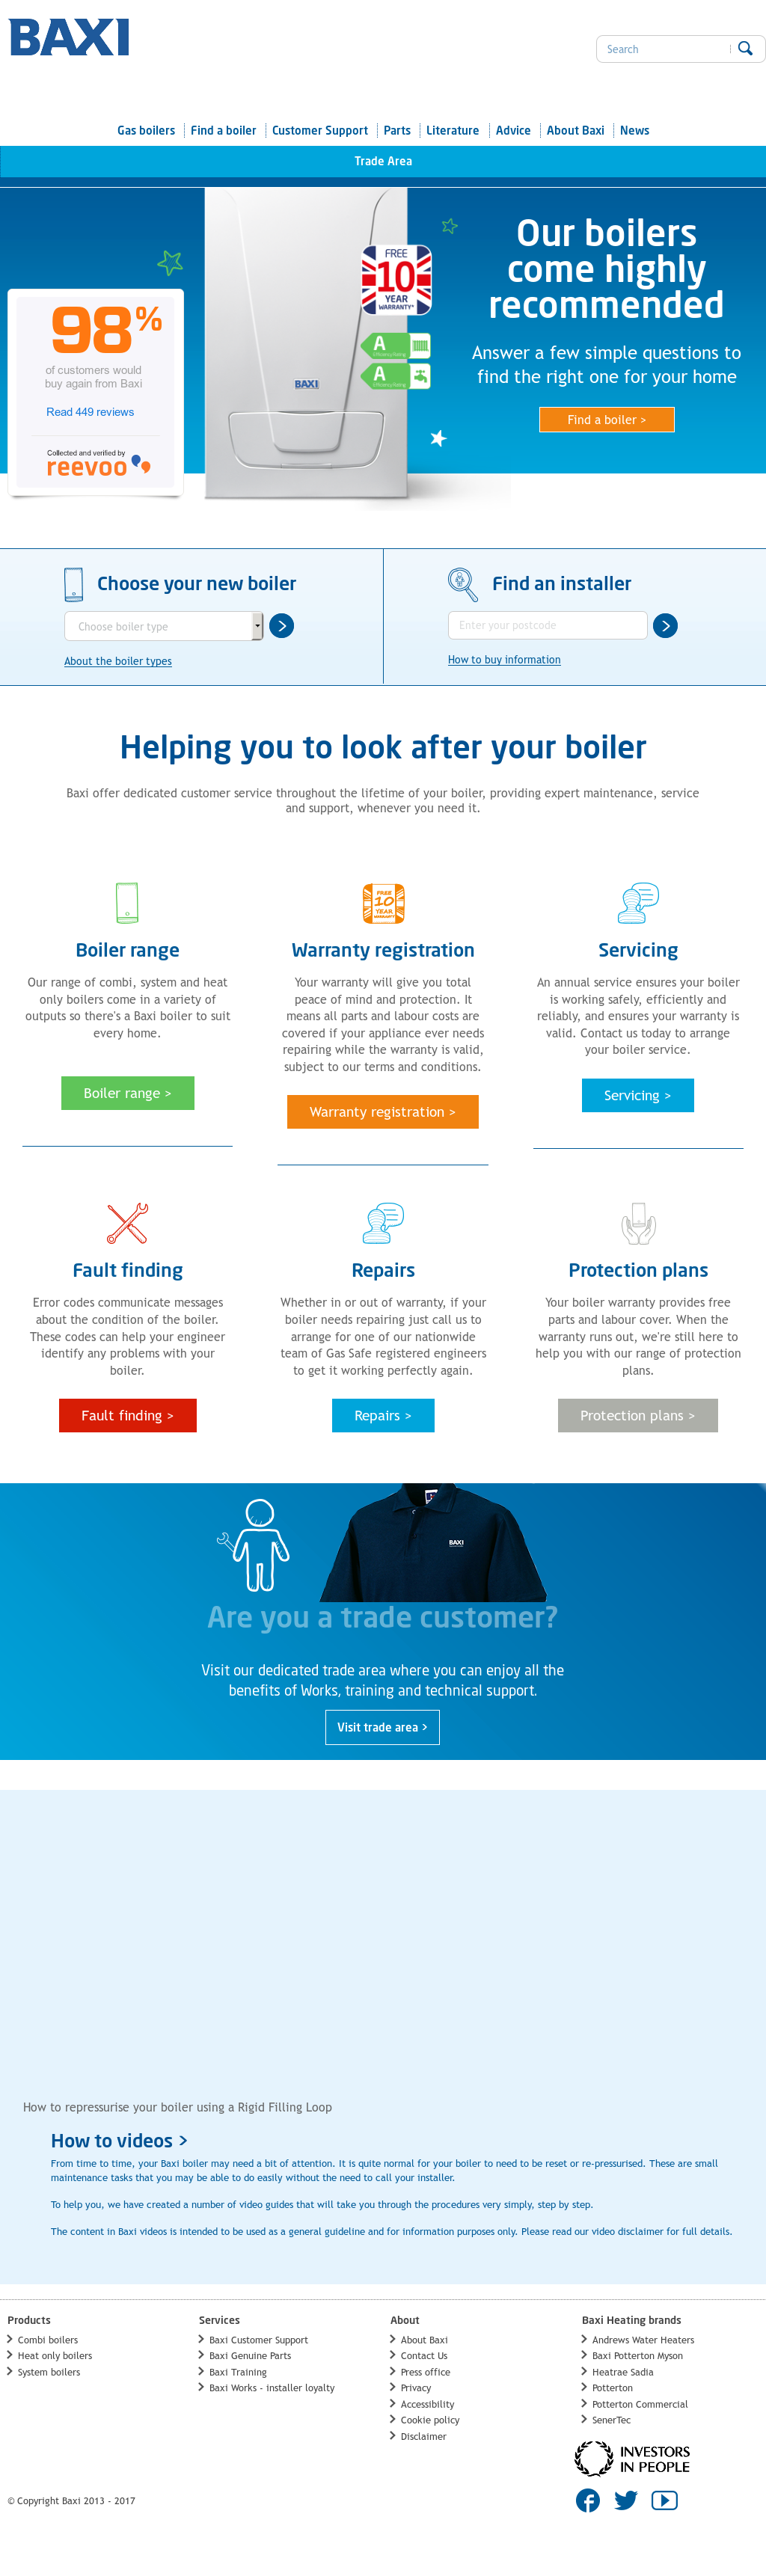 Baxi Competitors, Revenue and Employees - Owler Company Profile